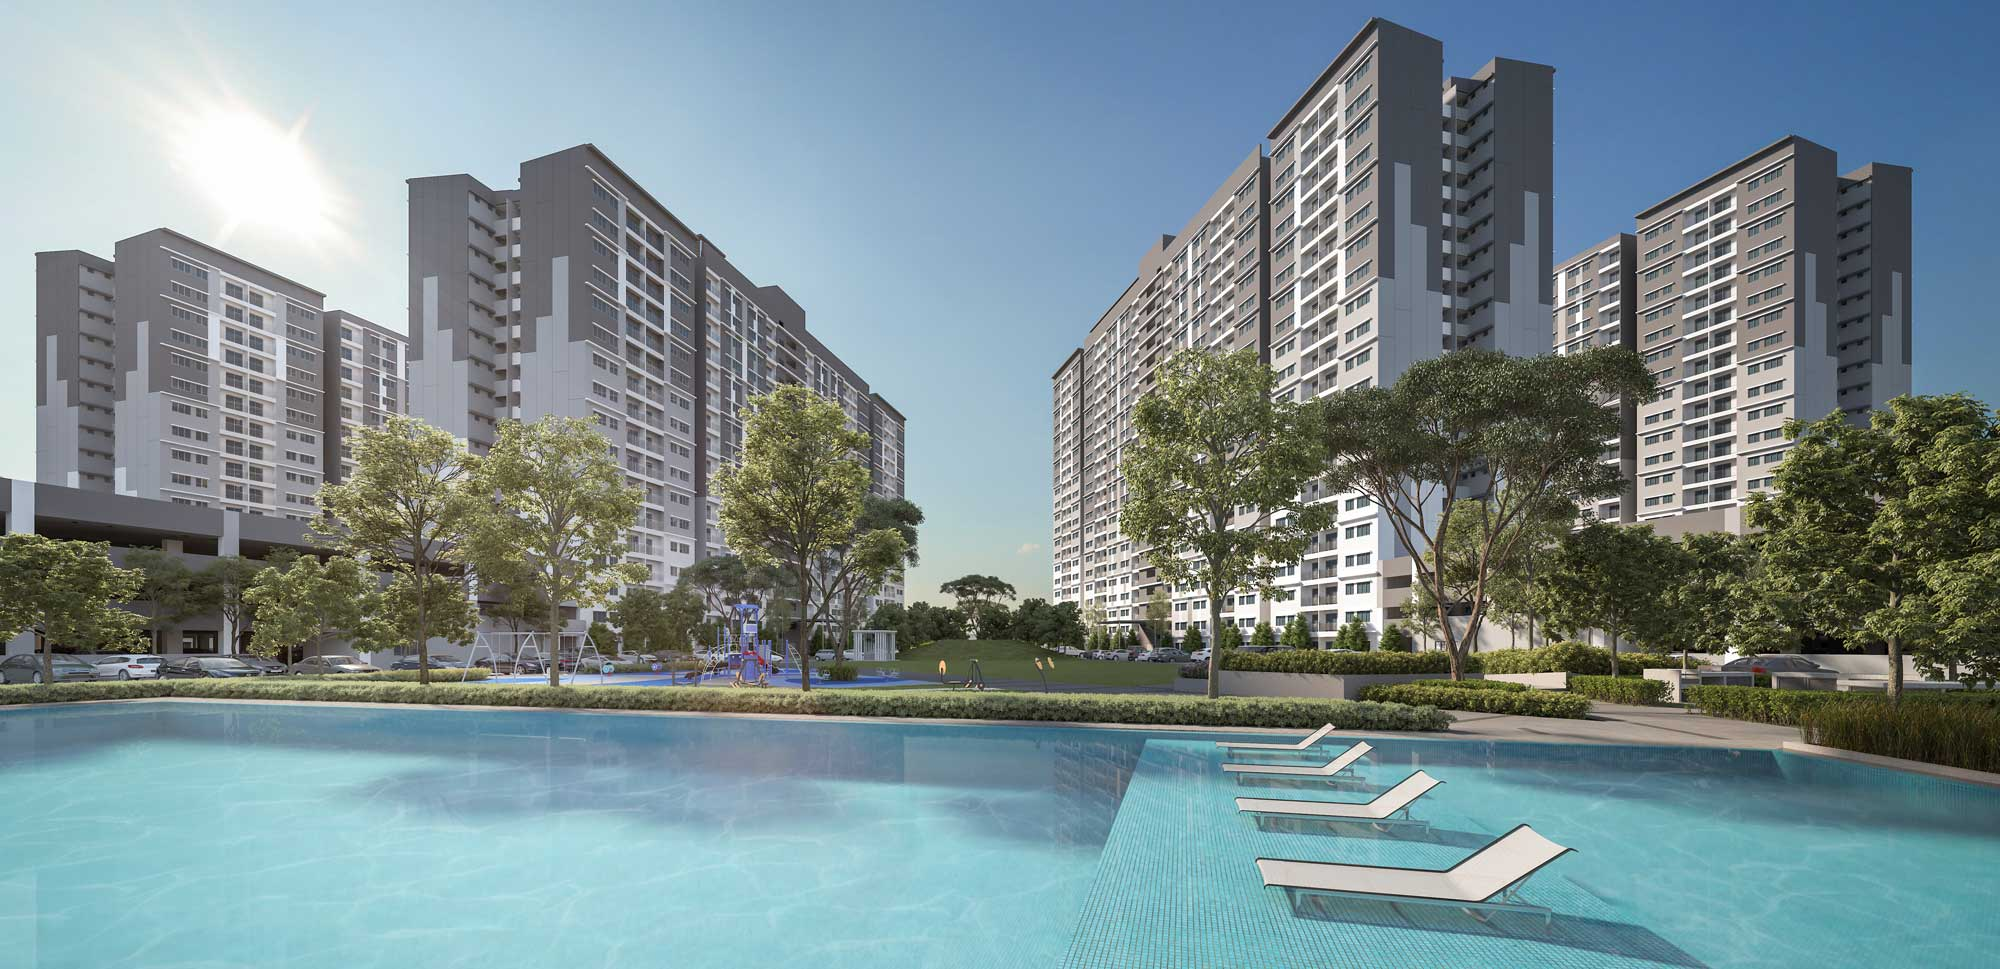 LBS Launches The First High-Rise Development In Alam Perdana